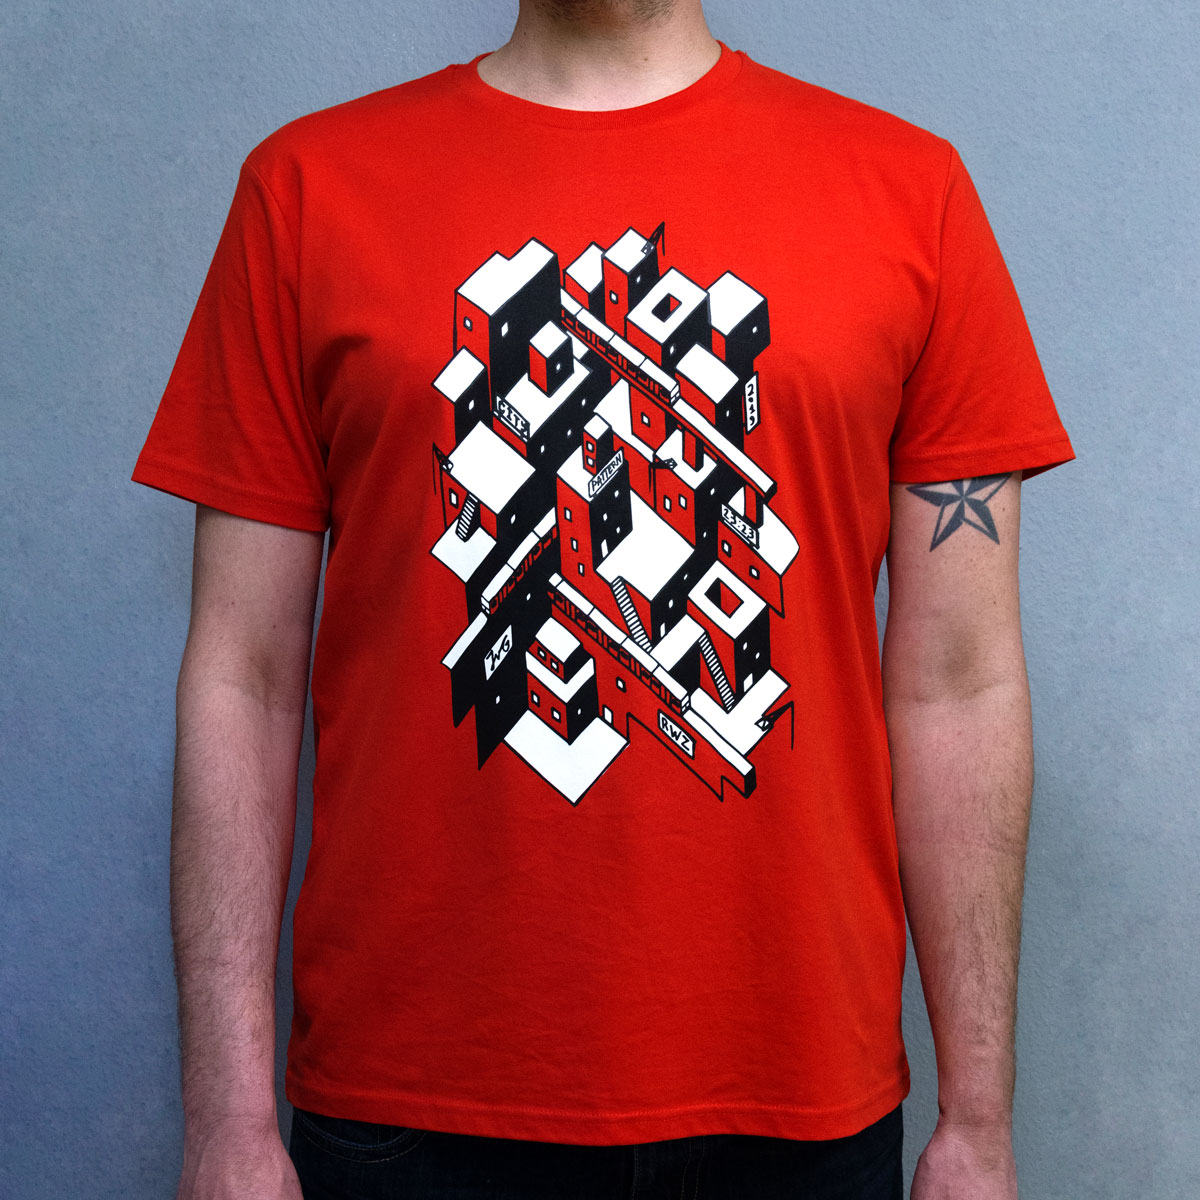 tshirt-zeefdruk-city-pattern